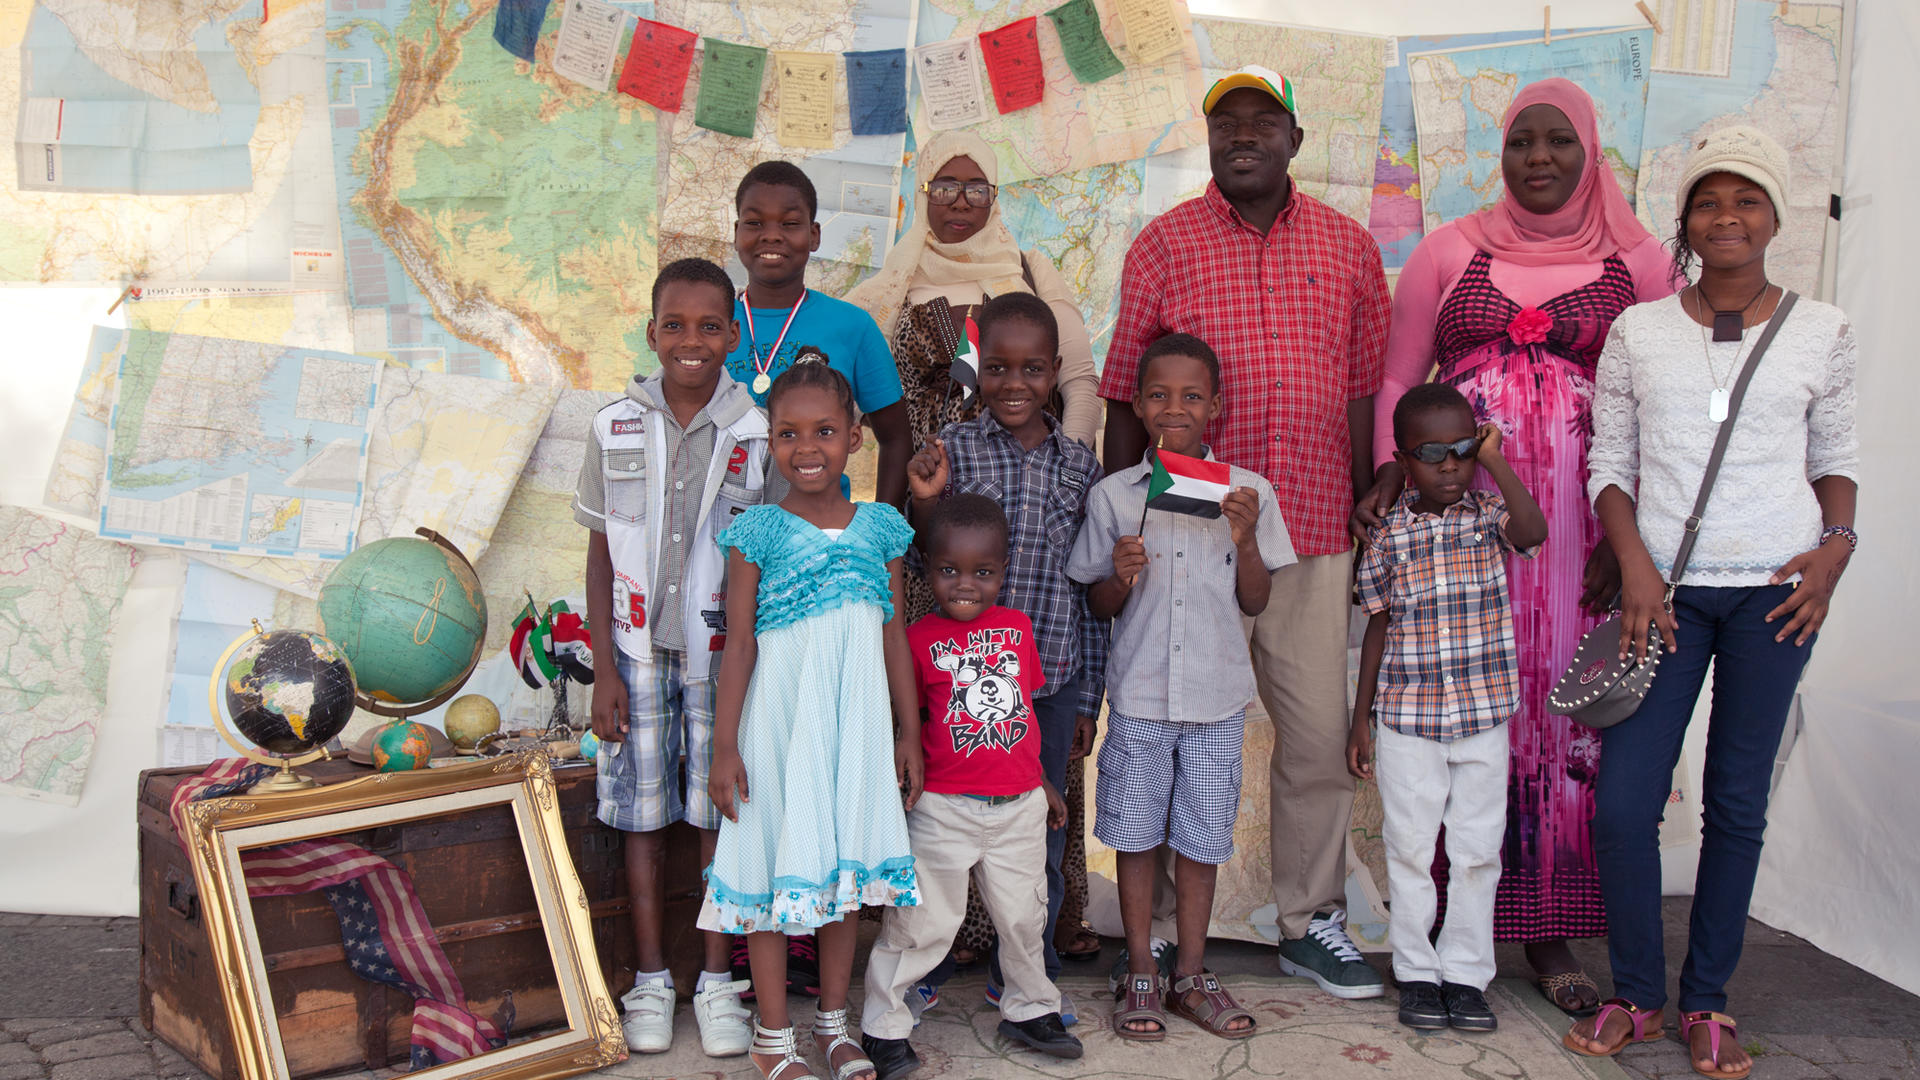 A newly arrived family from Sudan celebrates World Refugee Day in New Jersey.